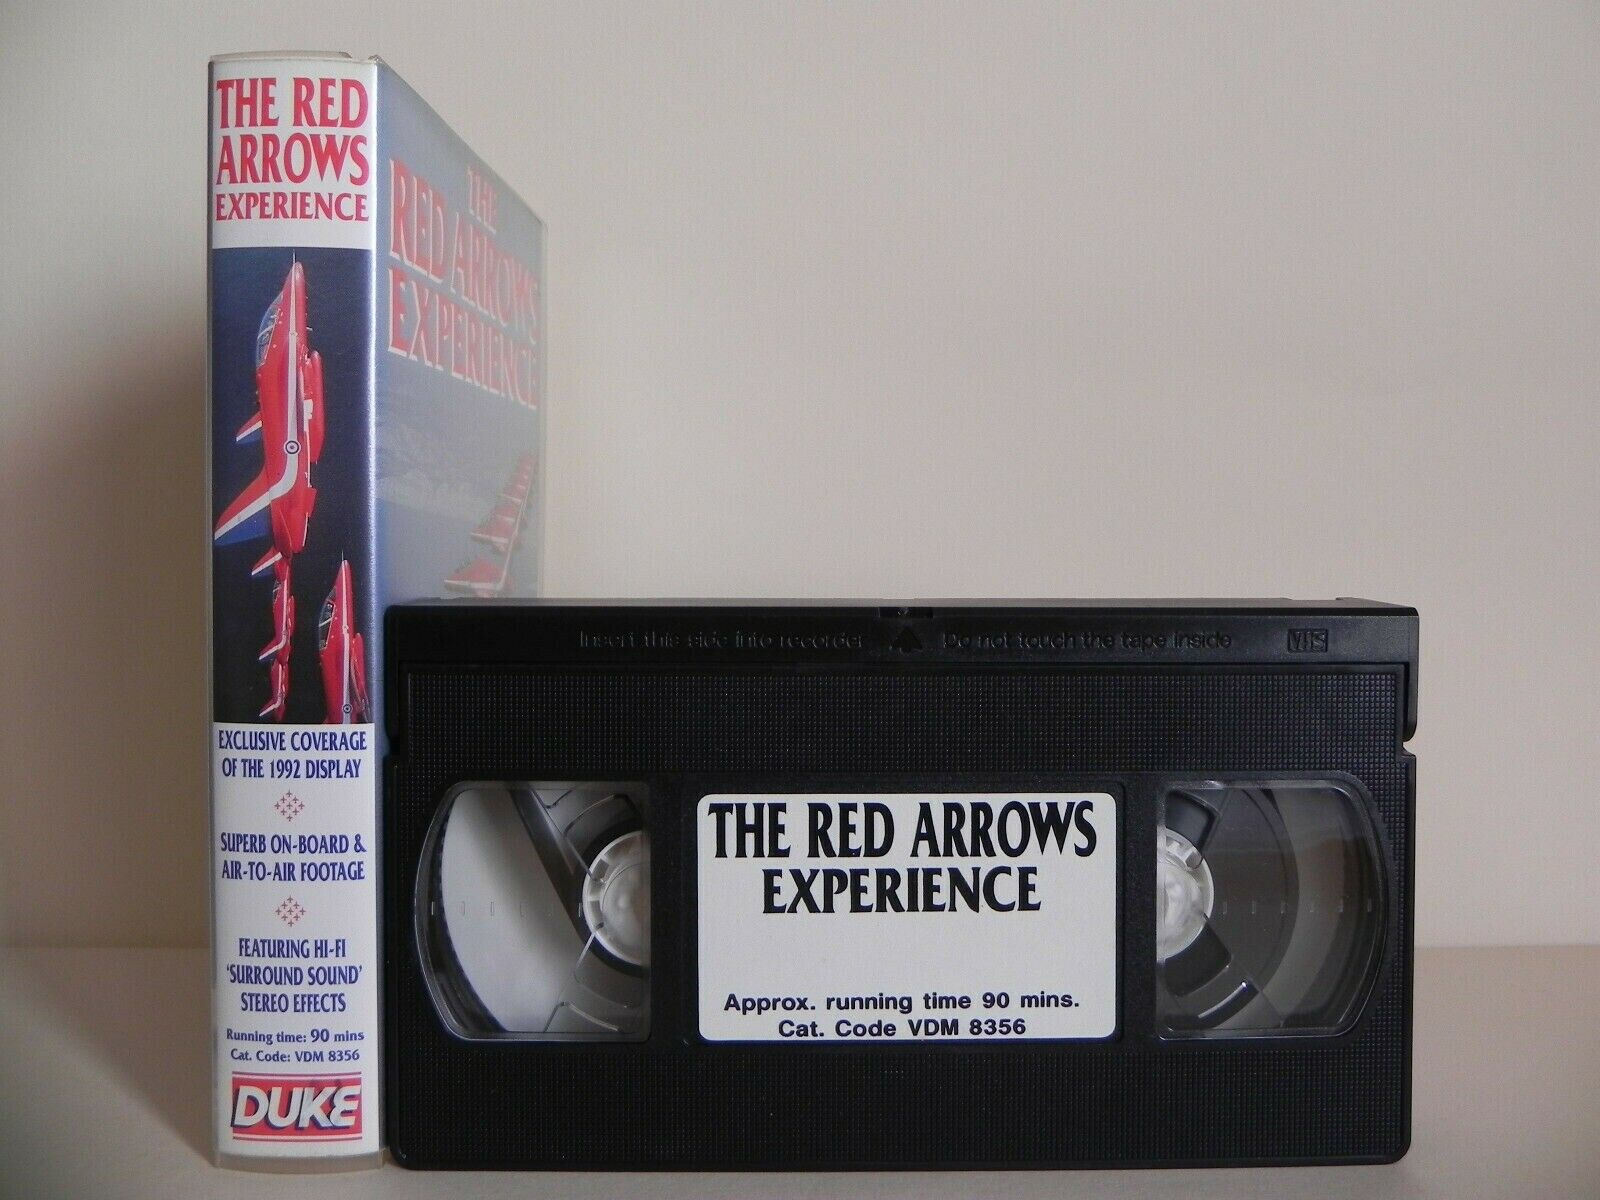 The Red Arows Experience - Exclusive Coverage - Stereo Effects - 90 mins - VHS